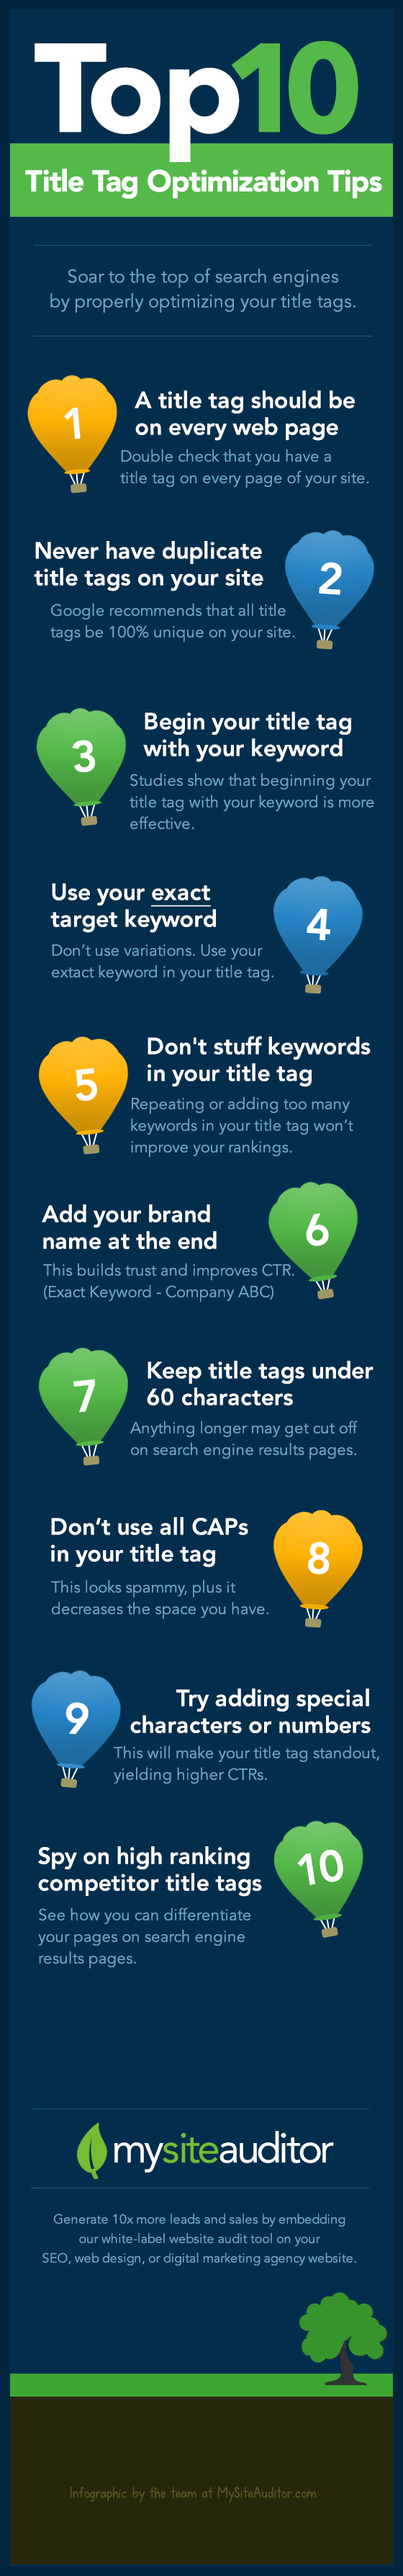 title tag rules infographic